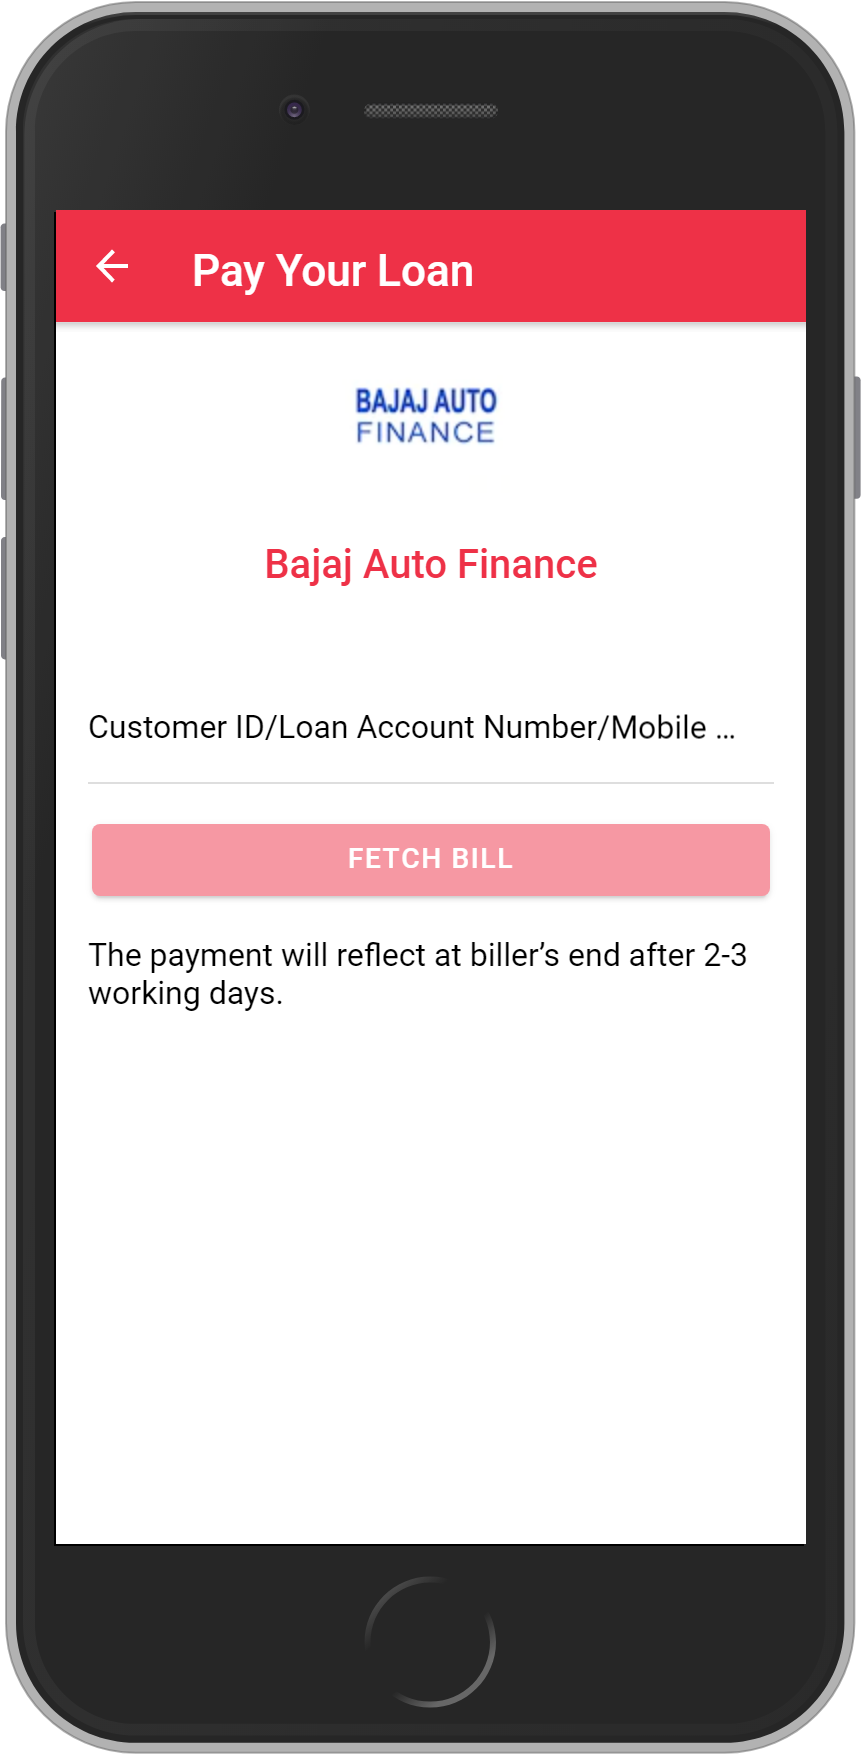 Get UNLIMITED <b>0.1%</b> CASHBACK on Bajaj Auto Finance Loan Payment.